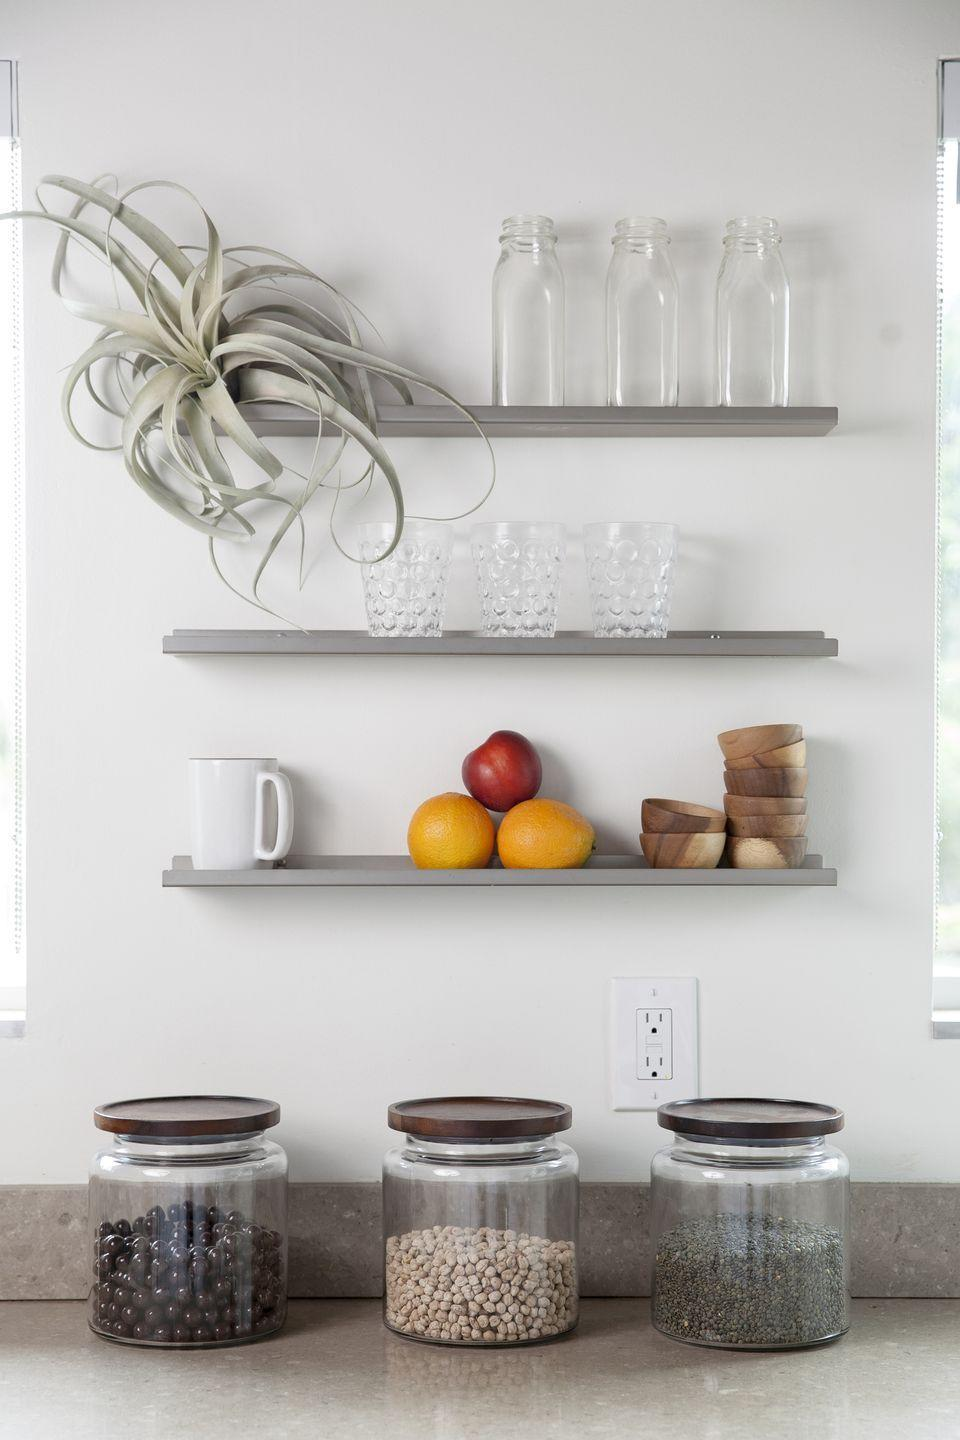 """<p>If your <a href=""""https://www.goodhousekeeping.com/home/organizing/tips/a31900/little-counterspace-design-tricks/"""" rel=""""nofollow noopener"""" target=""""_blank"""" data-ylk=""""slk:kitchen lacks storage"""" class=""""link rapid-noclick-resp"""">kitchen lacks storage</a>, your counter will feel the brunt of the problem. So choose pretty containers (and not a lineup of grocery store boxes) when you have to devote visible space to food. </p>"""